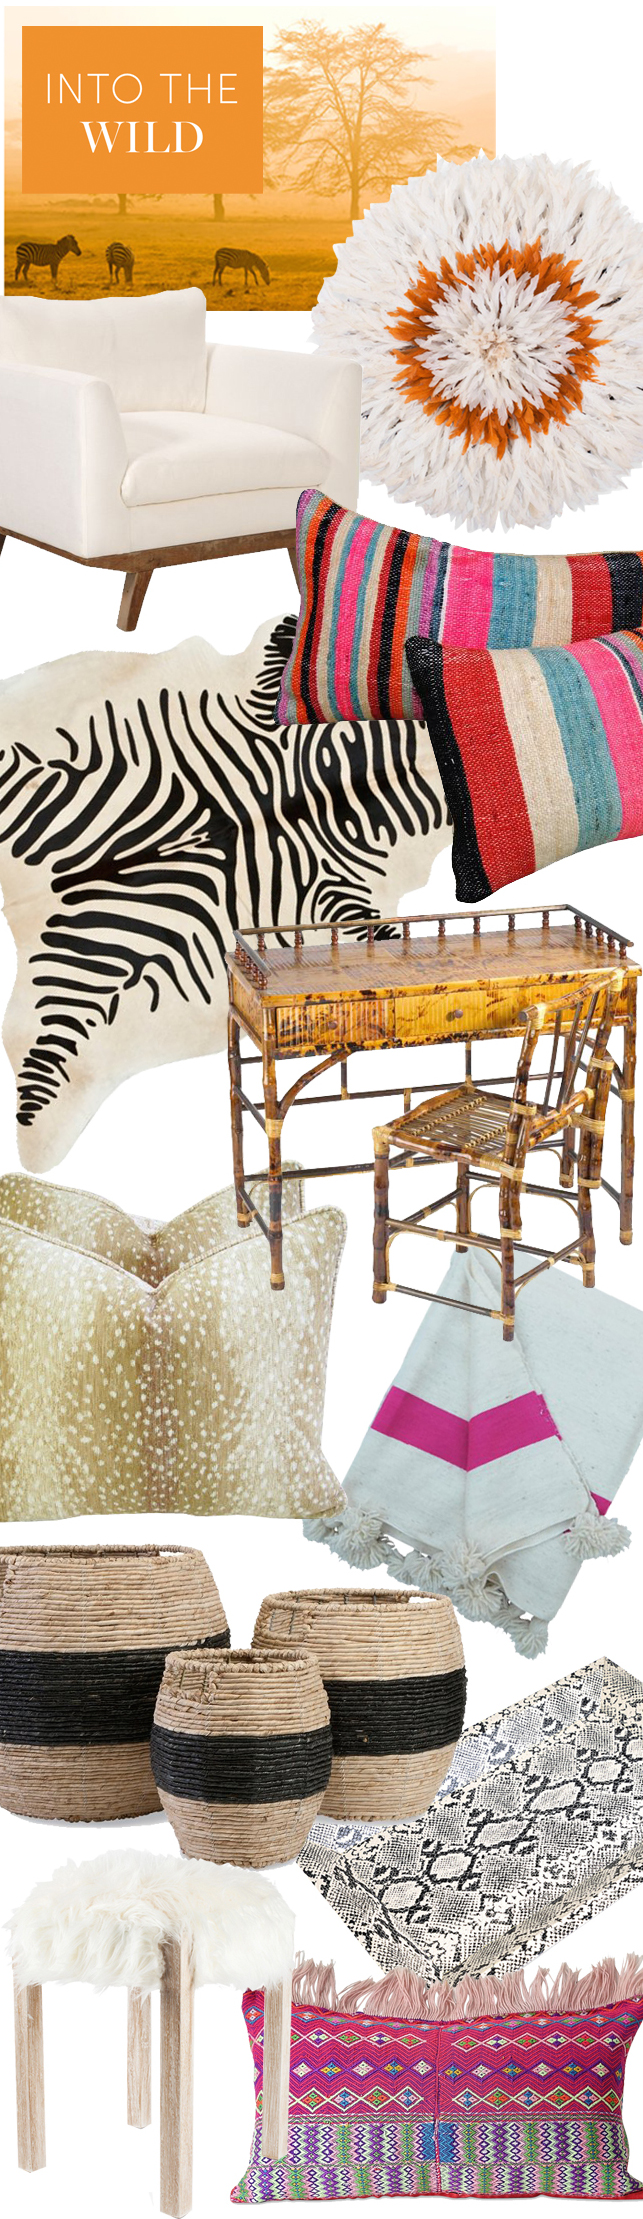 african-safari-theme-decor